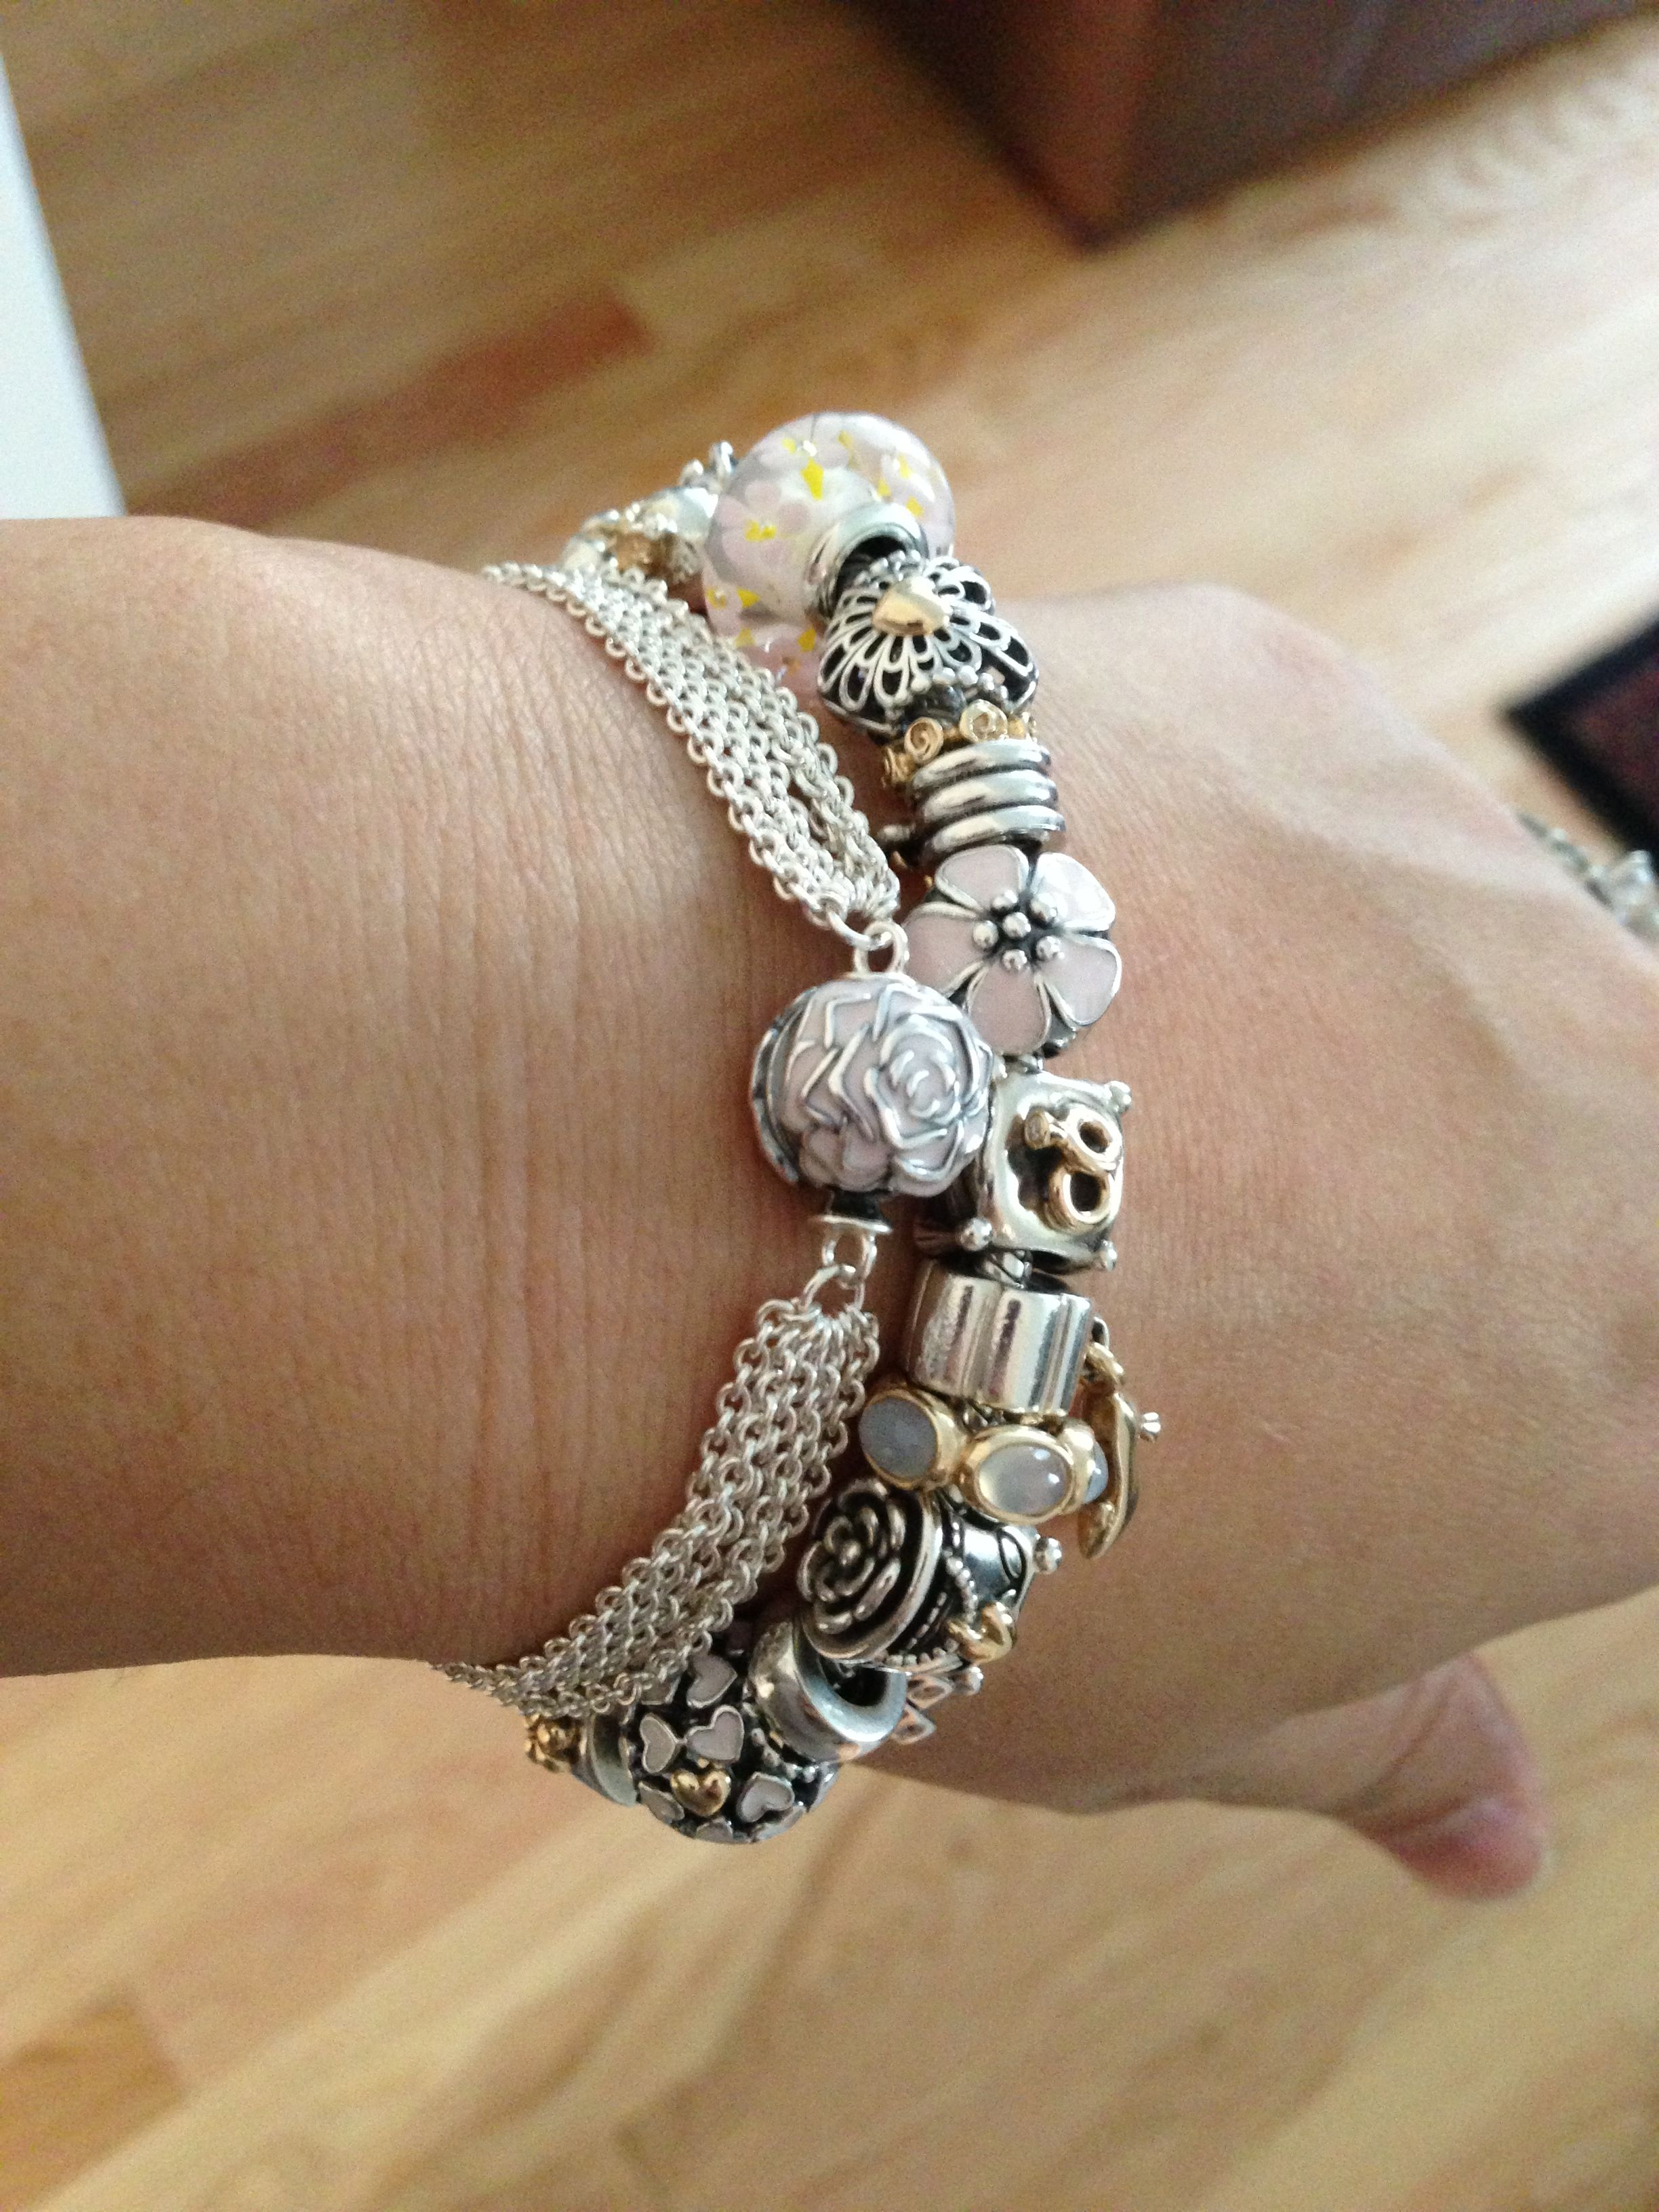 Lovely multiple strap bracelet with rose clip love to have this